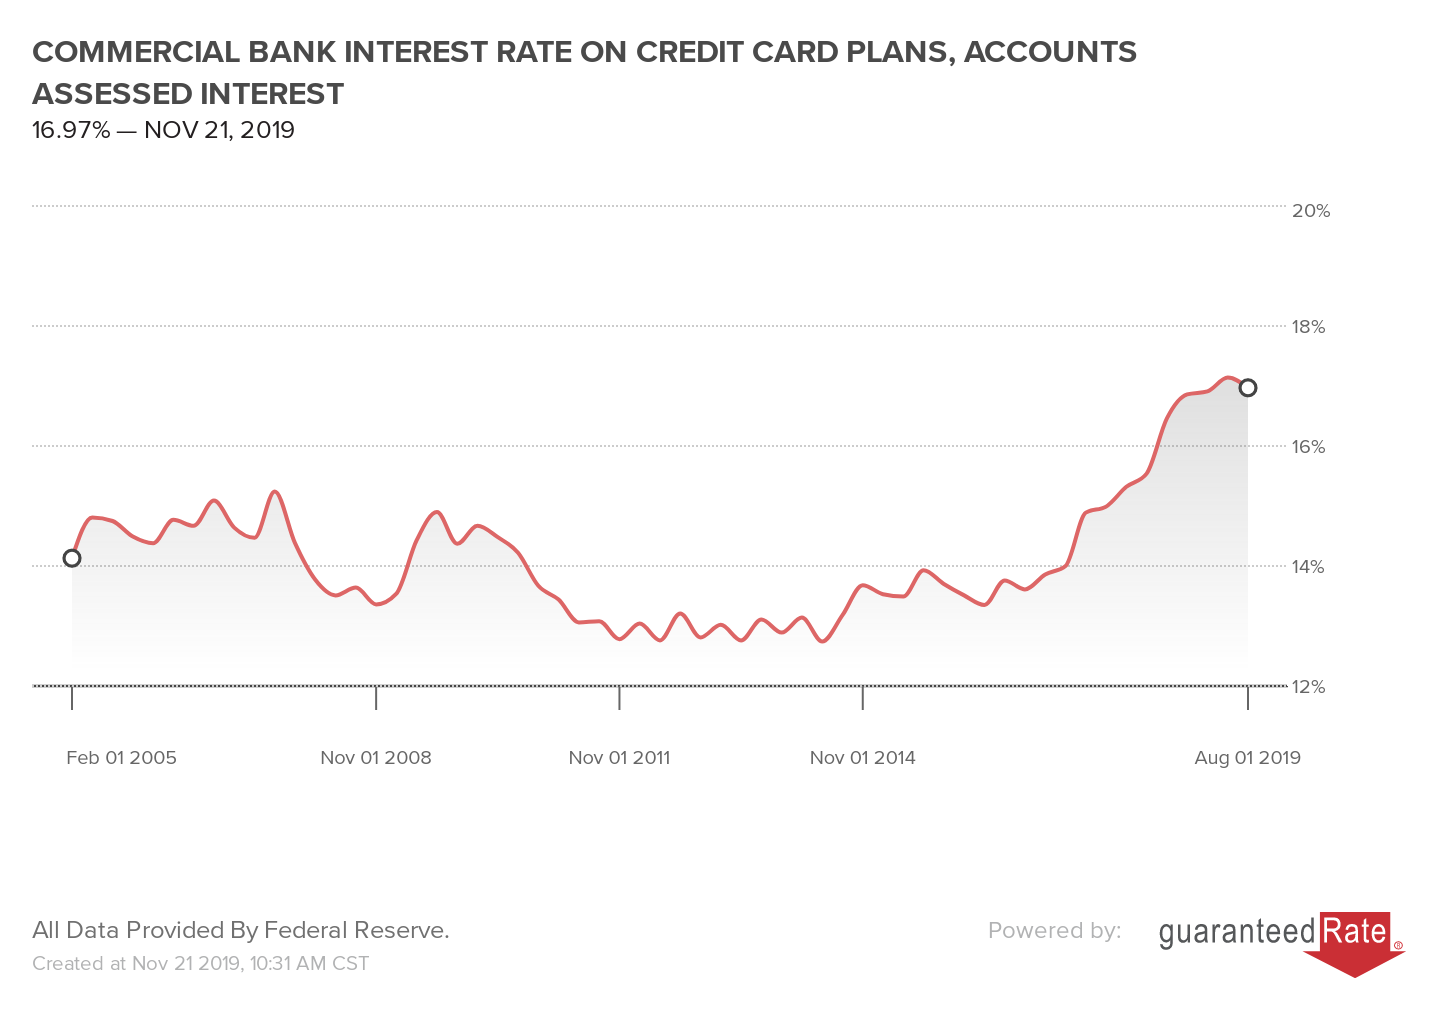 COMMERCIAL BANK INTEREST RATE ON CREDIT CARD PLANS, ACCOUNTS ASSESSED INTEREST